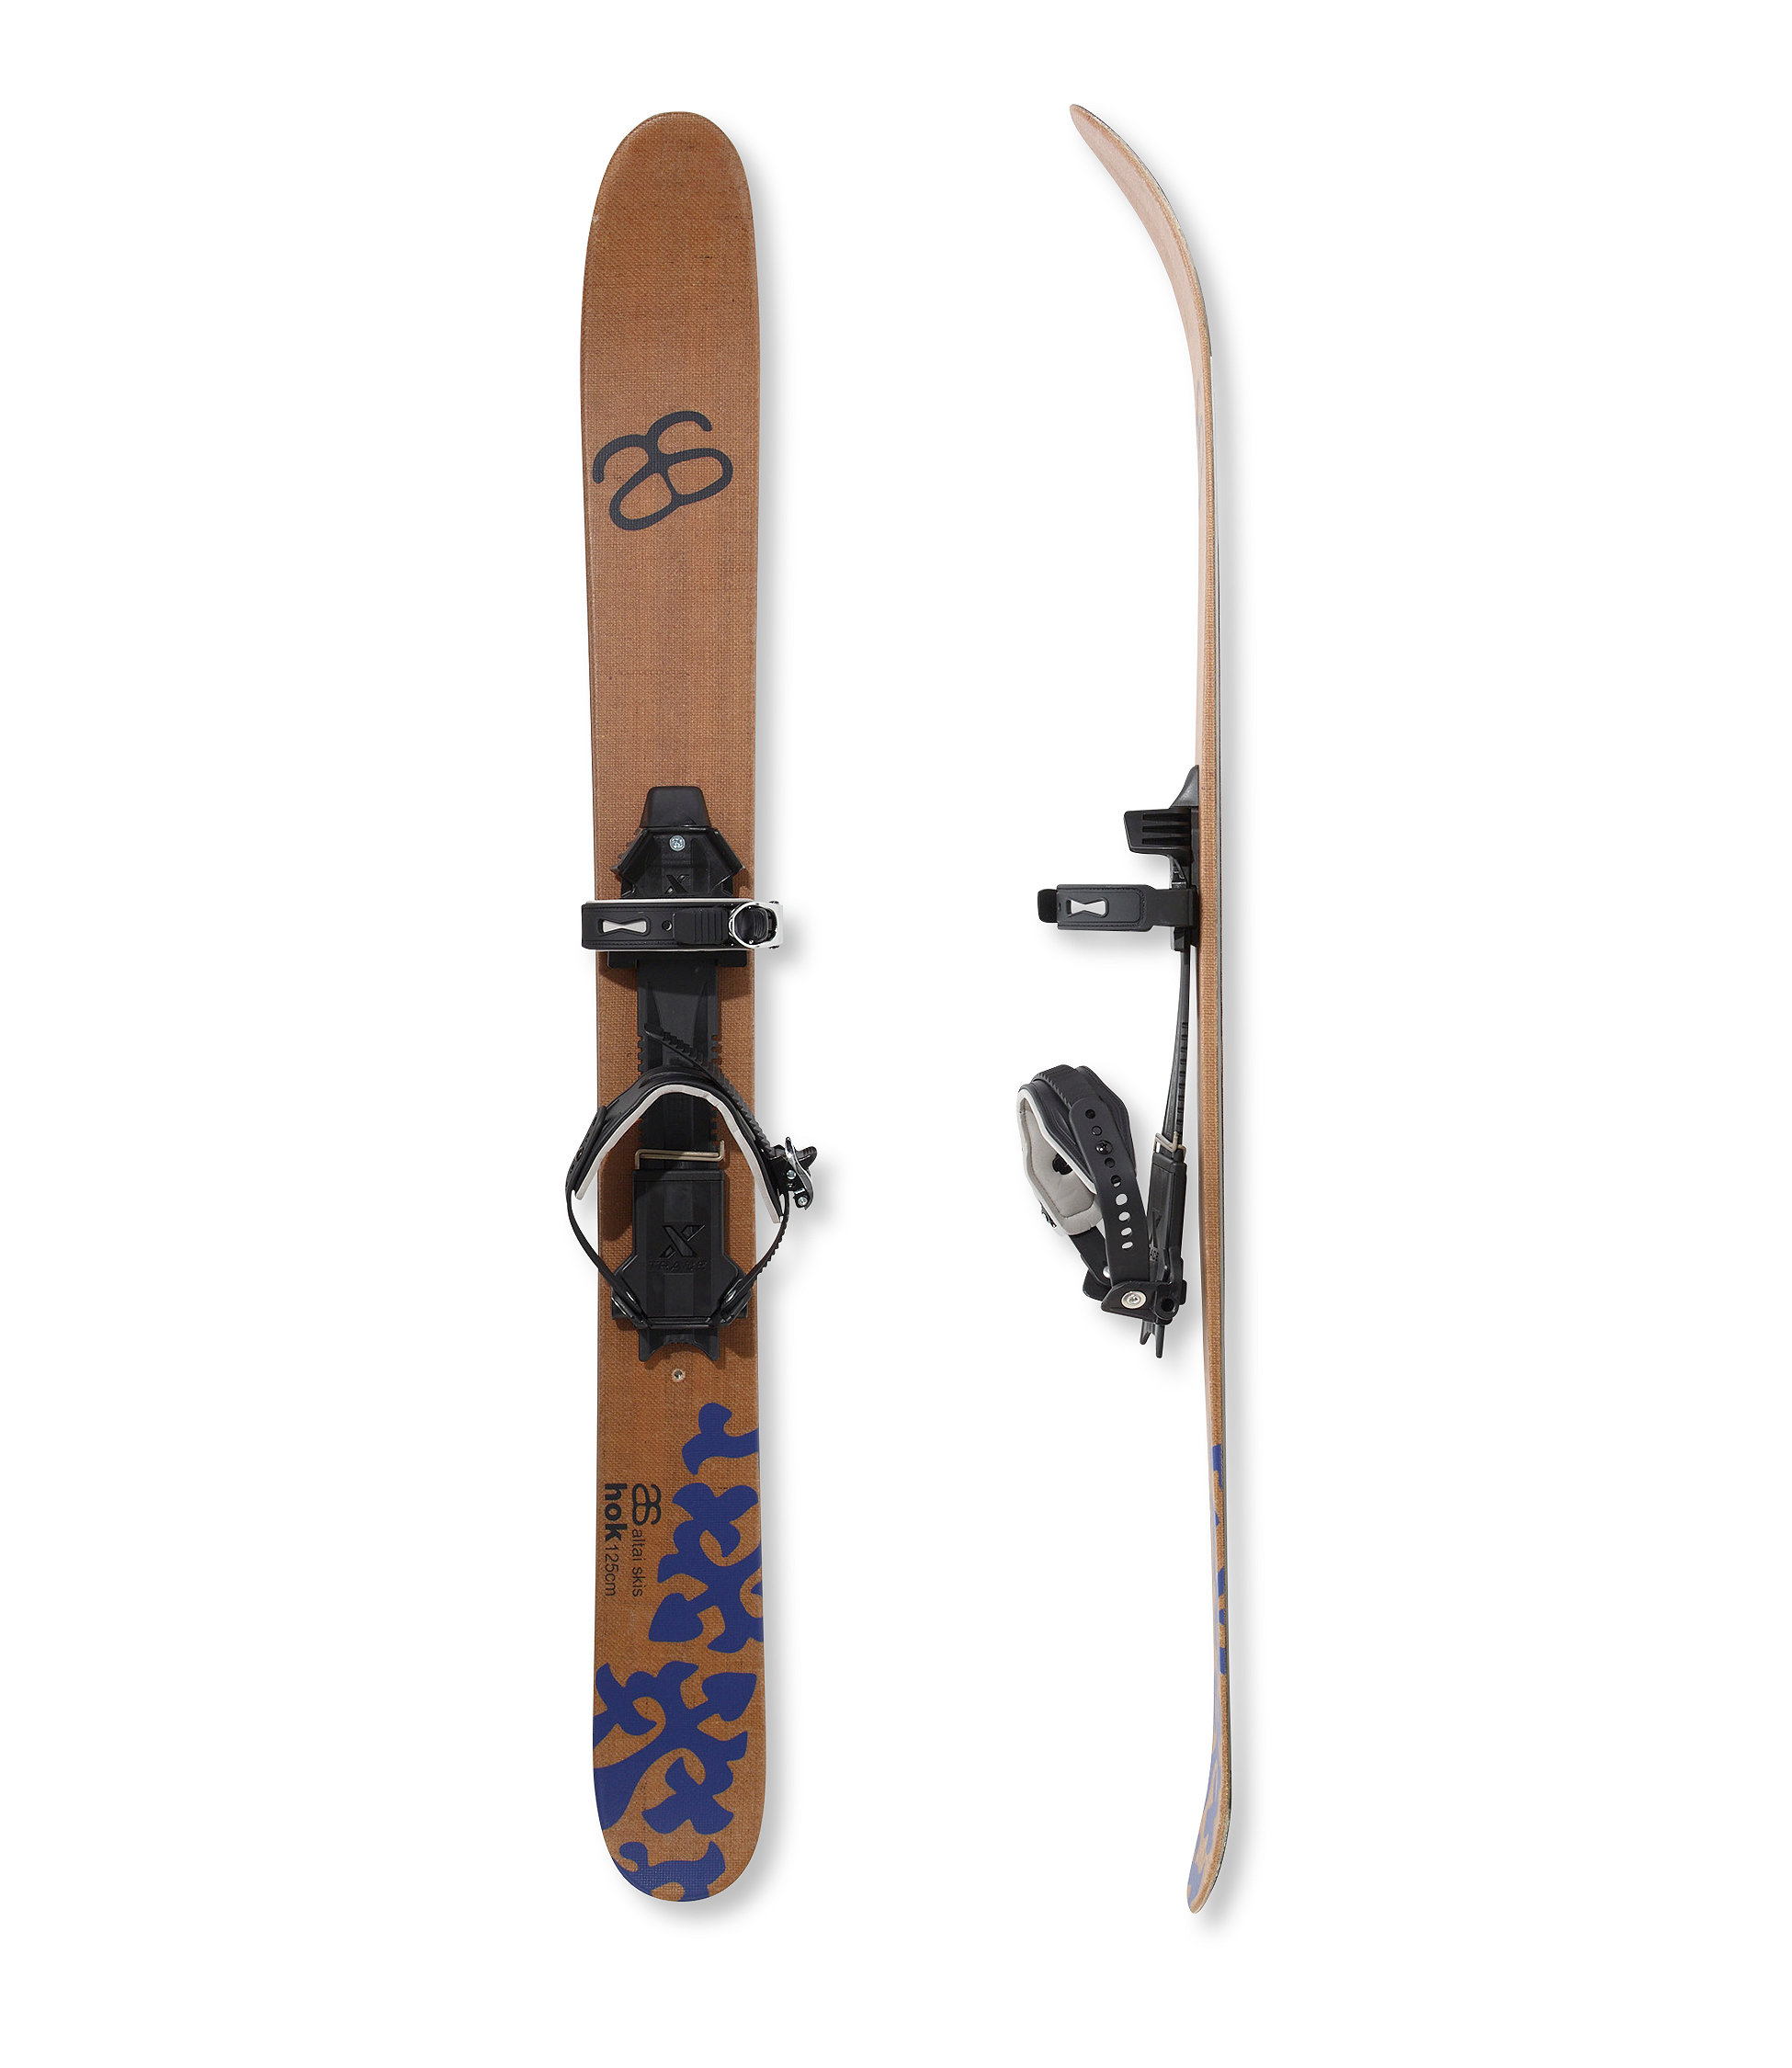 photo of a TSL nordic touring ski